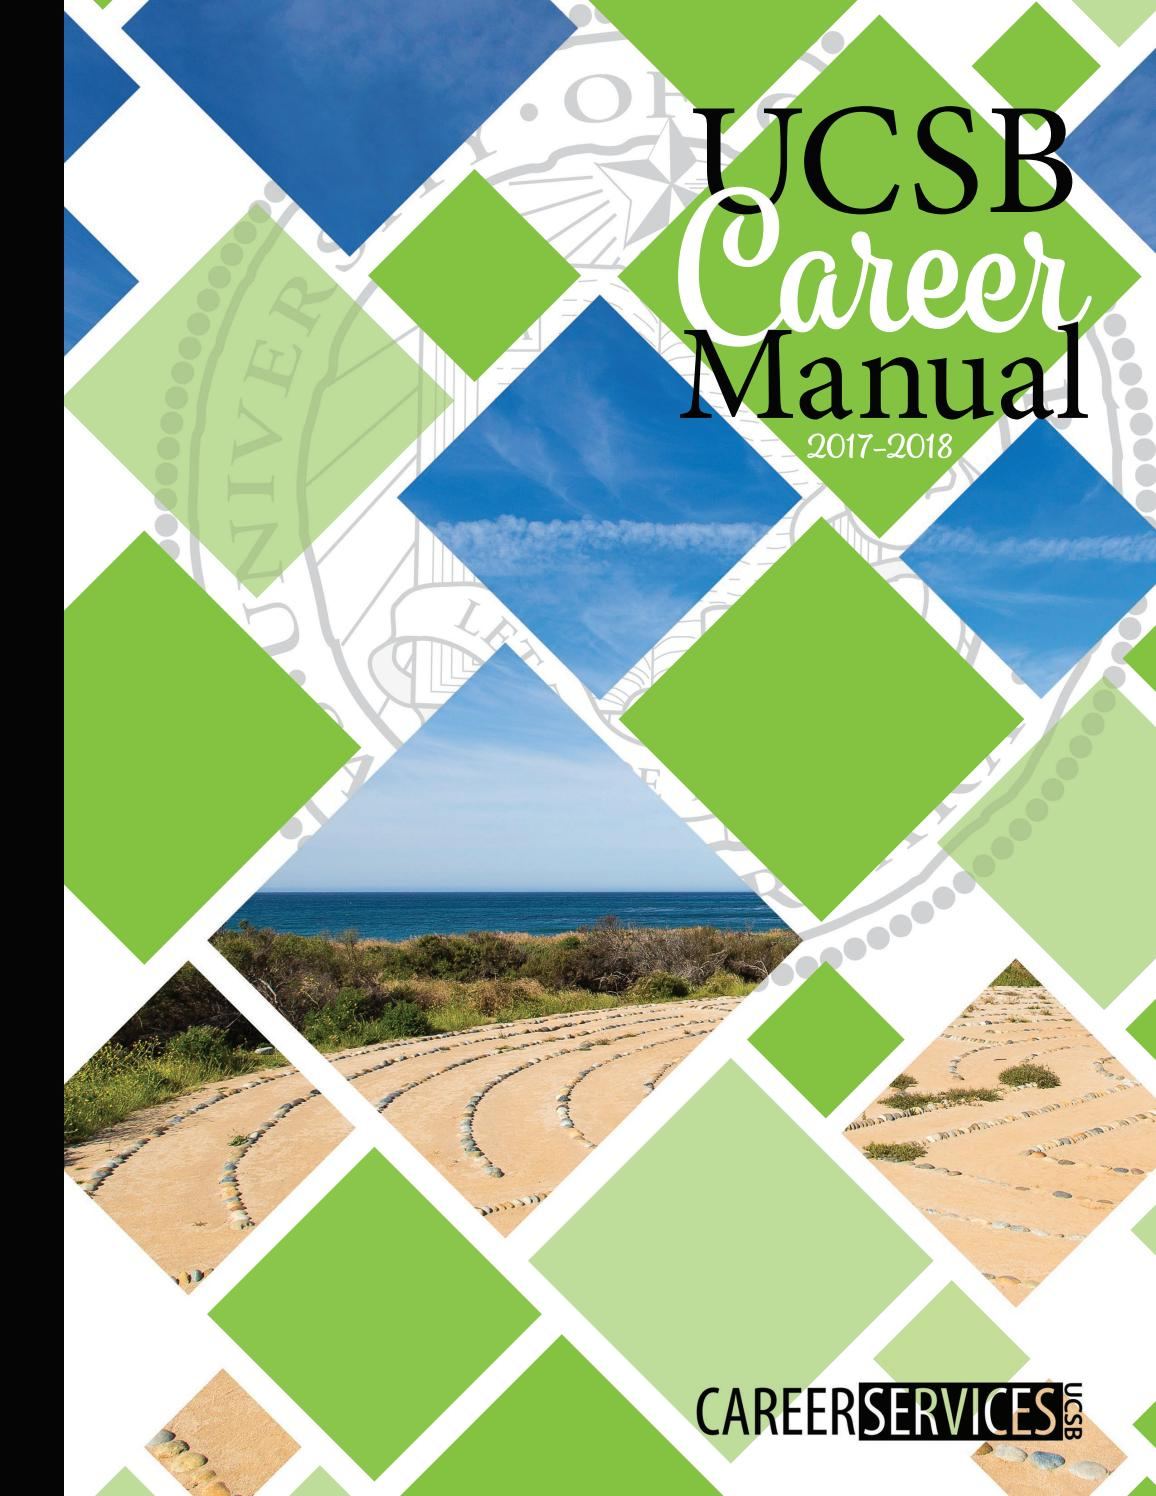 Academic Calendar Ucsb.Ucsb Career Manual 2017 2018 By Ucsb Career Services Issuu